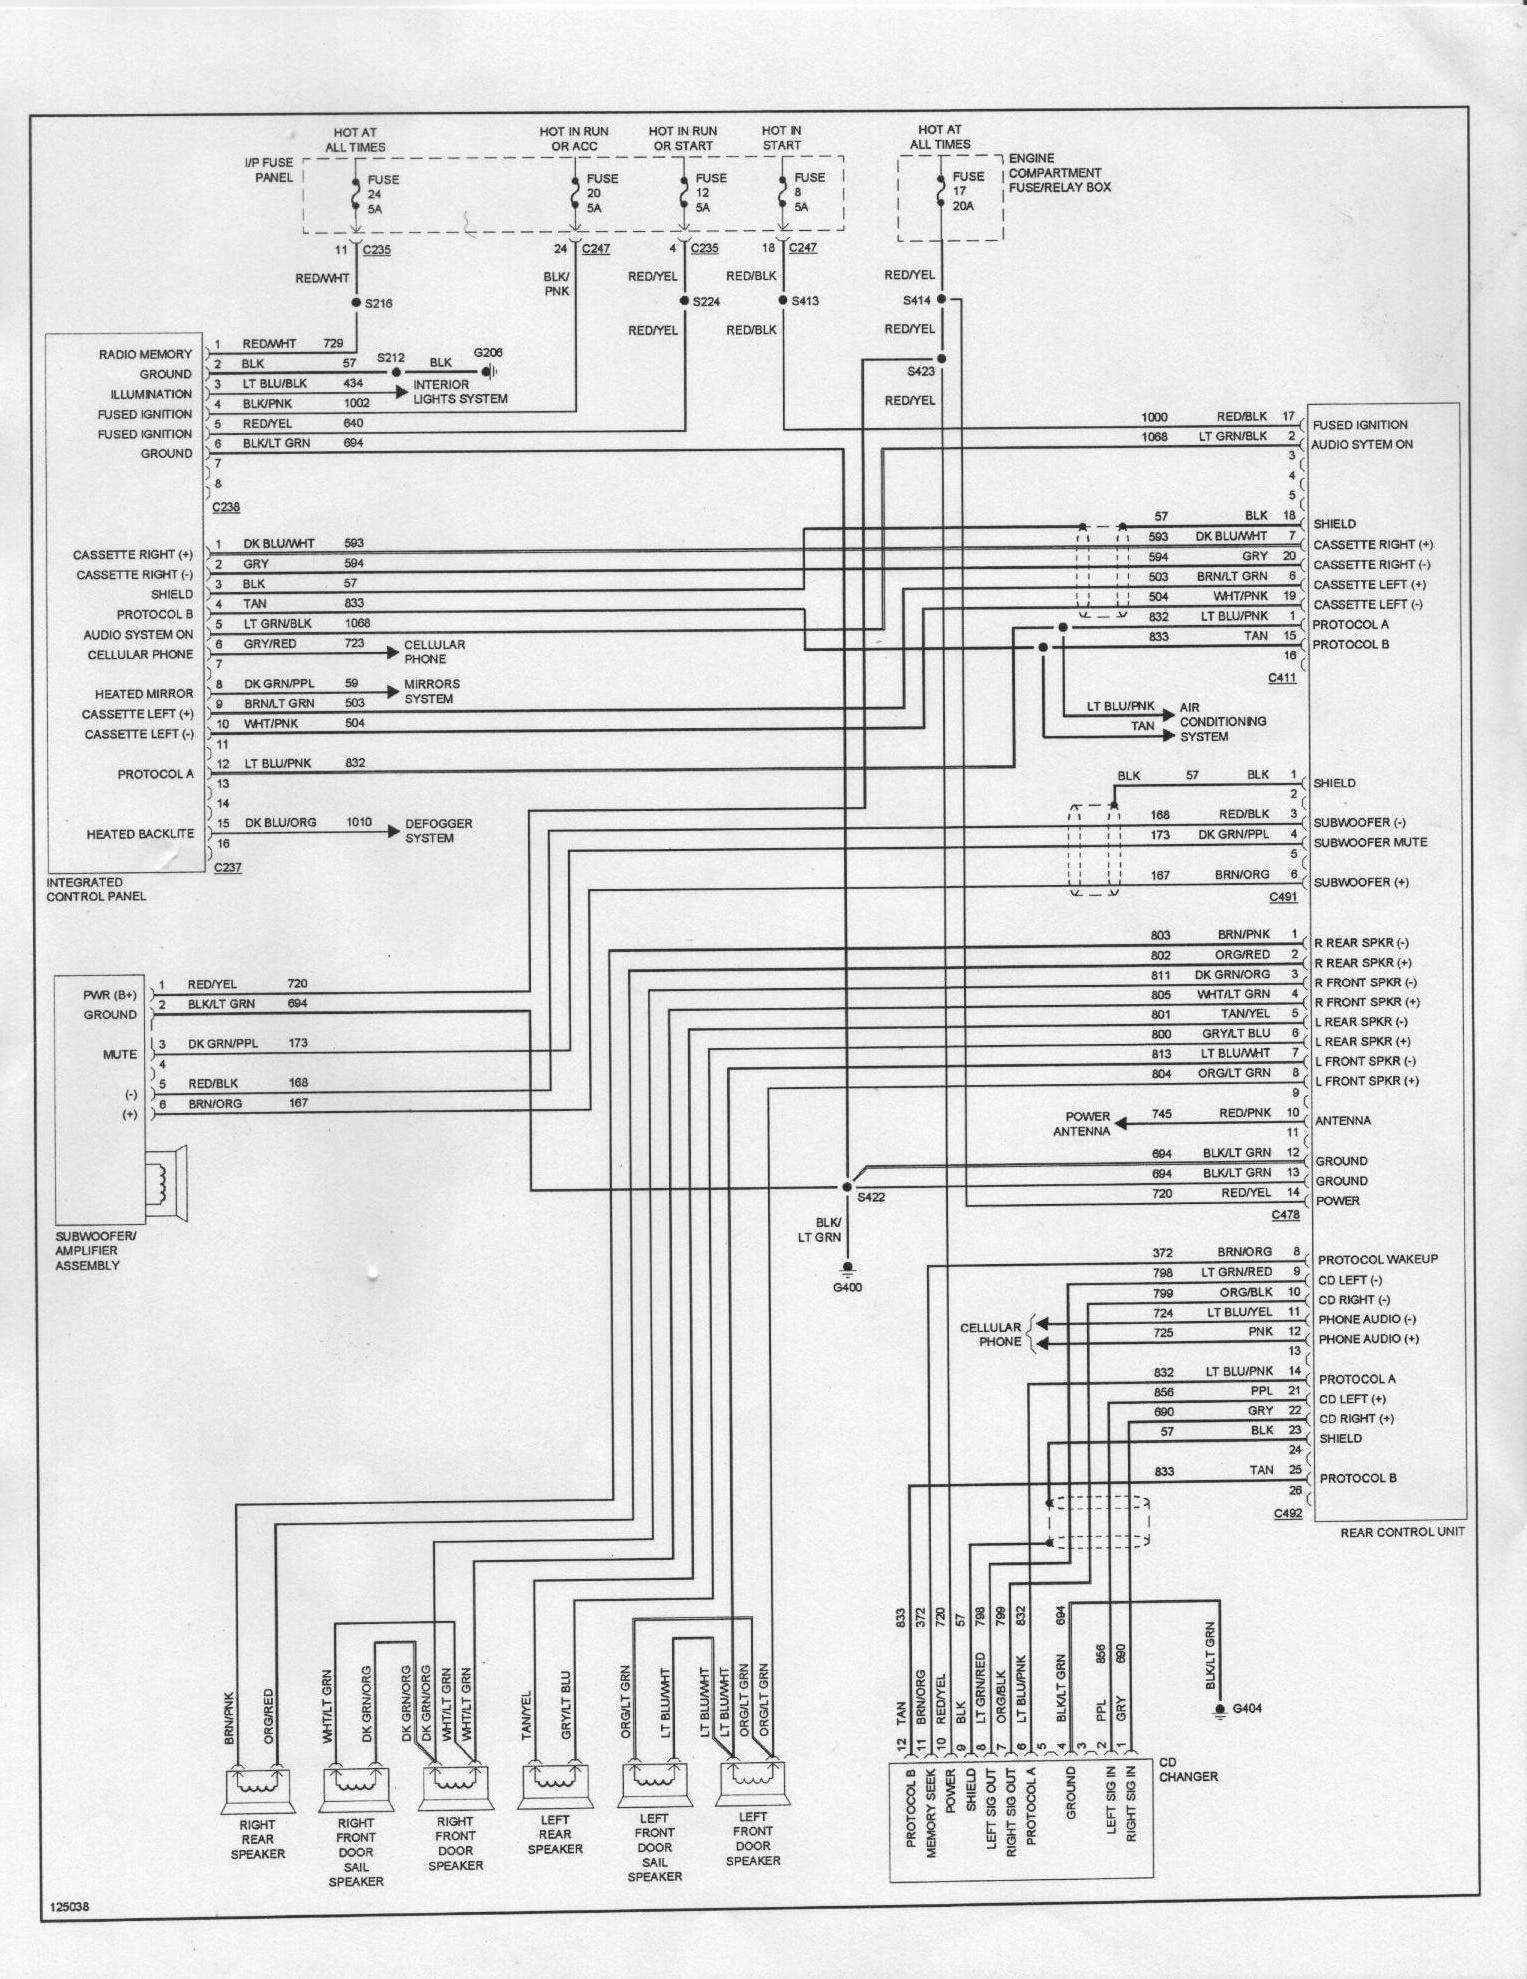 44917d1173064914 wiring diagram ford taurus diagram96 wiring diagram for 2004 ford taurus radio the wiring diagram 1997 ford taurus radio wiring diagram at crackthecode.co